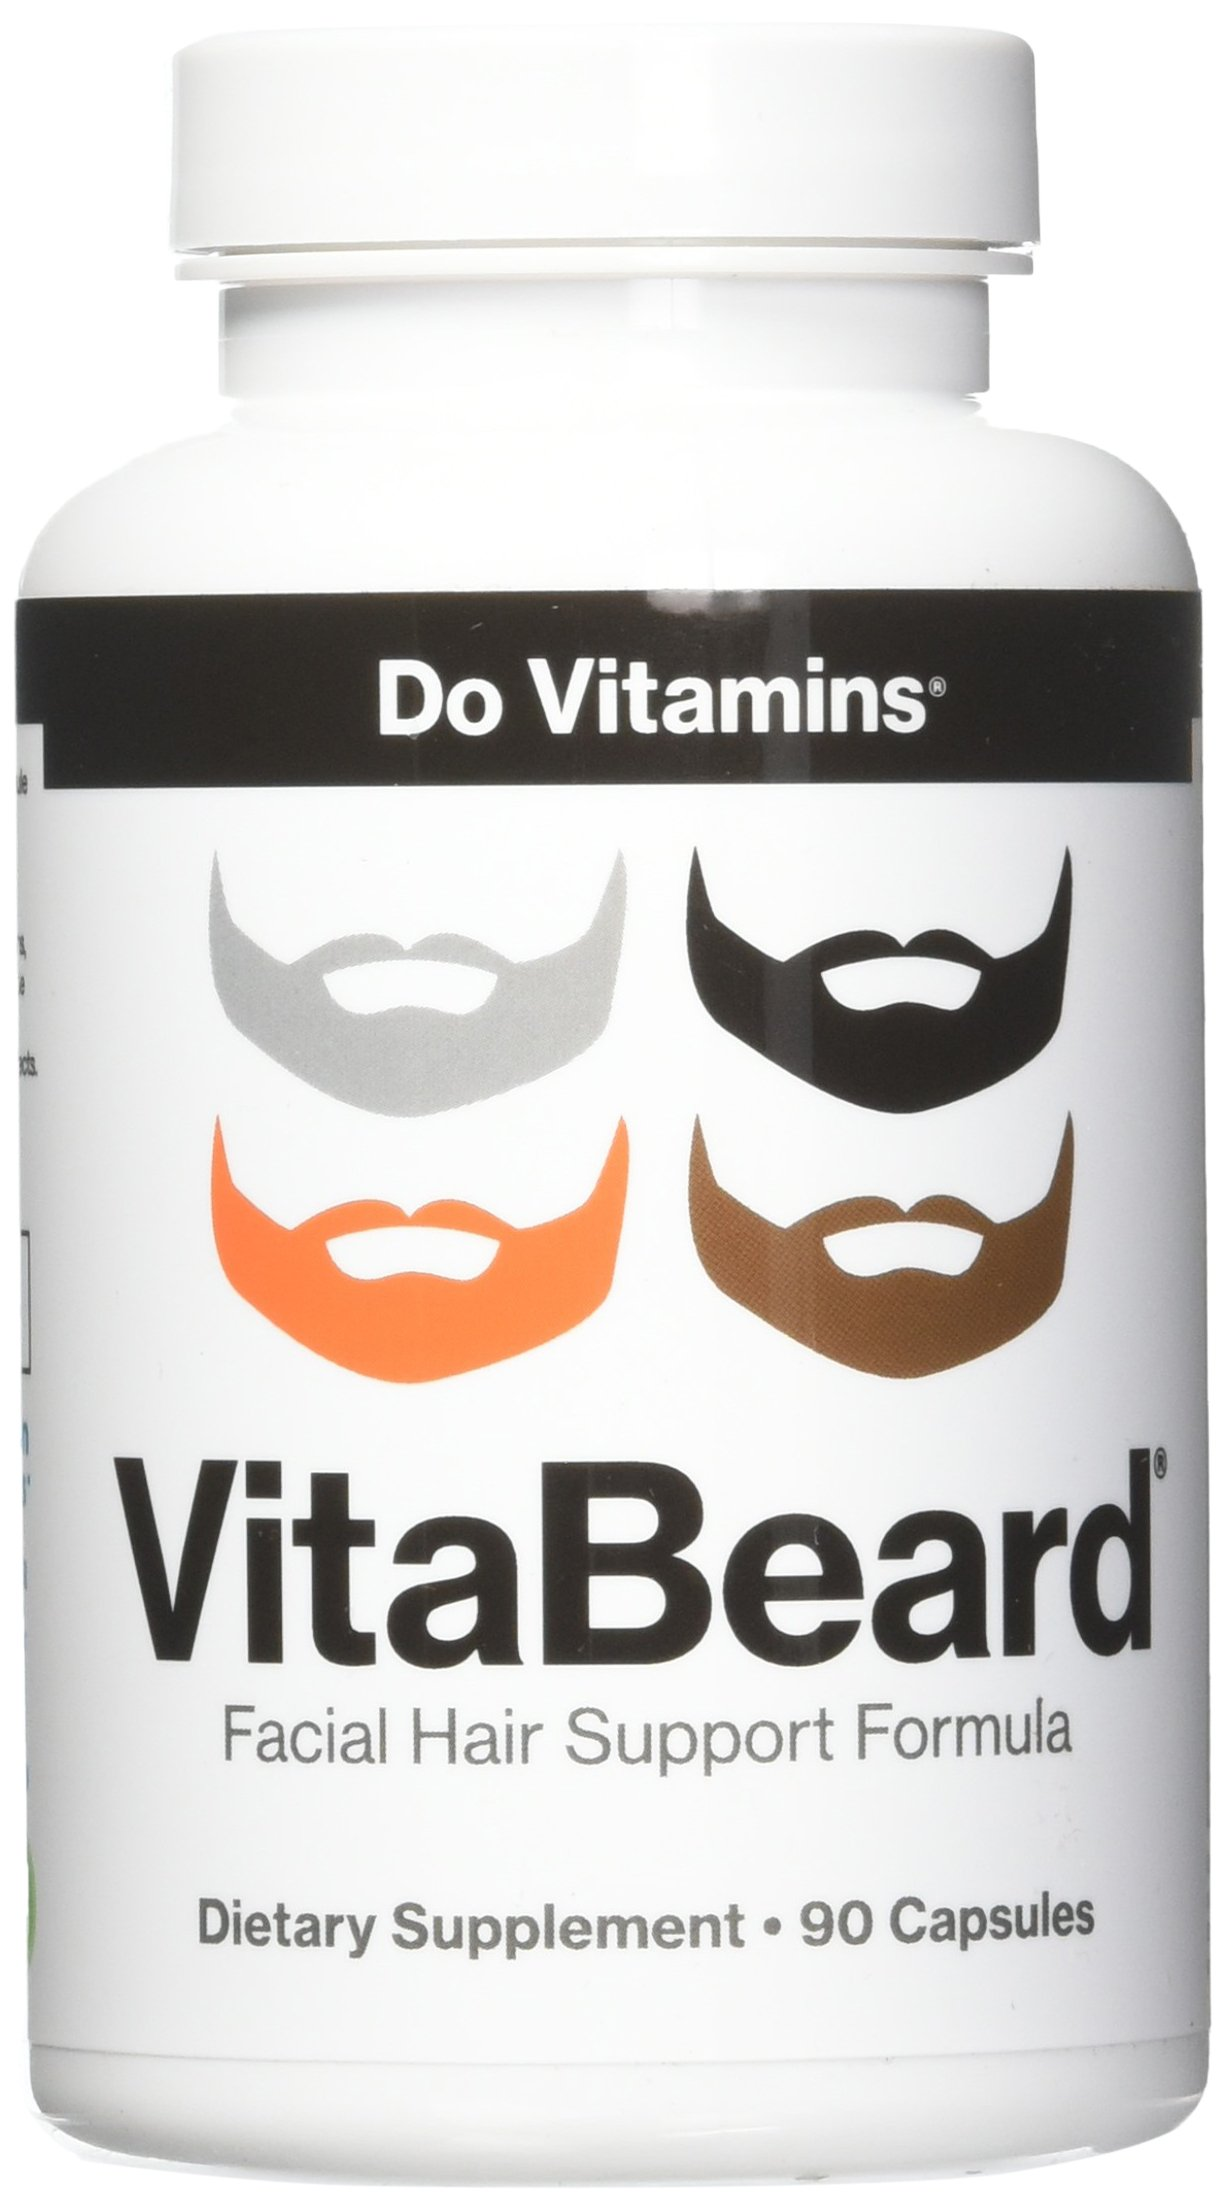 Do Vitamins - VitaBeard Facial Hair Growth Multivitamin, The Original Beard Growth Supplement for Men, Grow a Thicker Fuller Beard – Vegan, Non-GMO, 3rd Party Tested, 90 Capsules